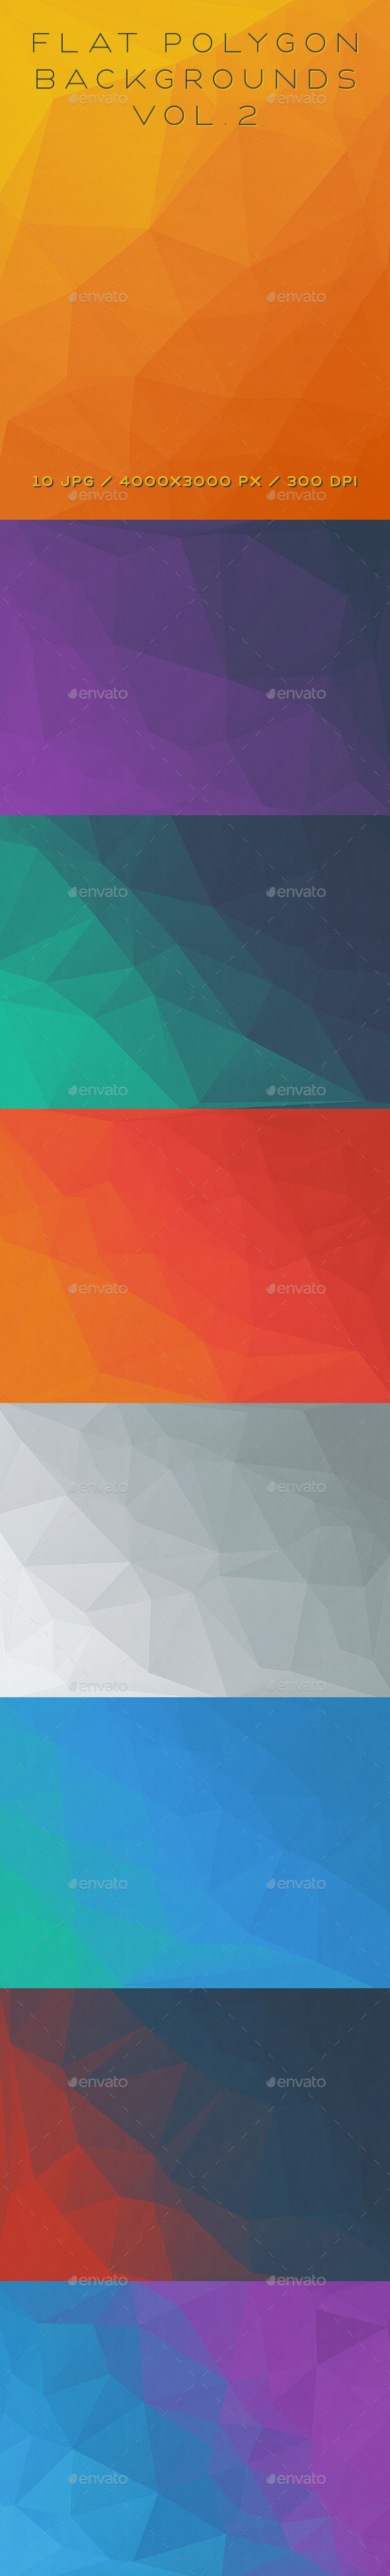 Flat Polygon Backgrounds Vol.2 - Abstract Backgrounds